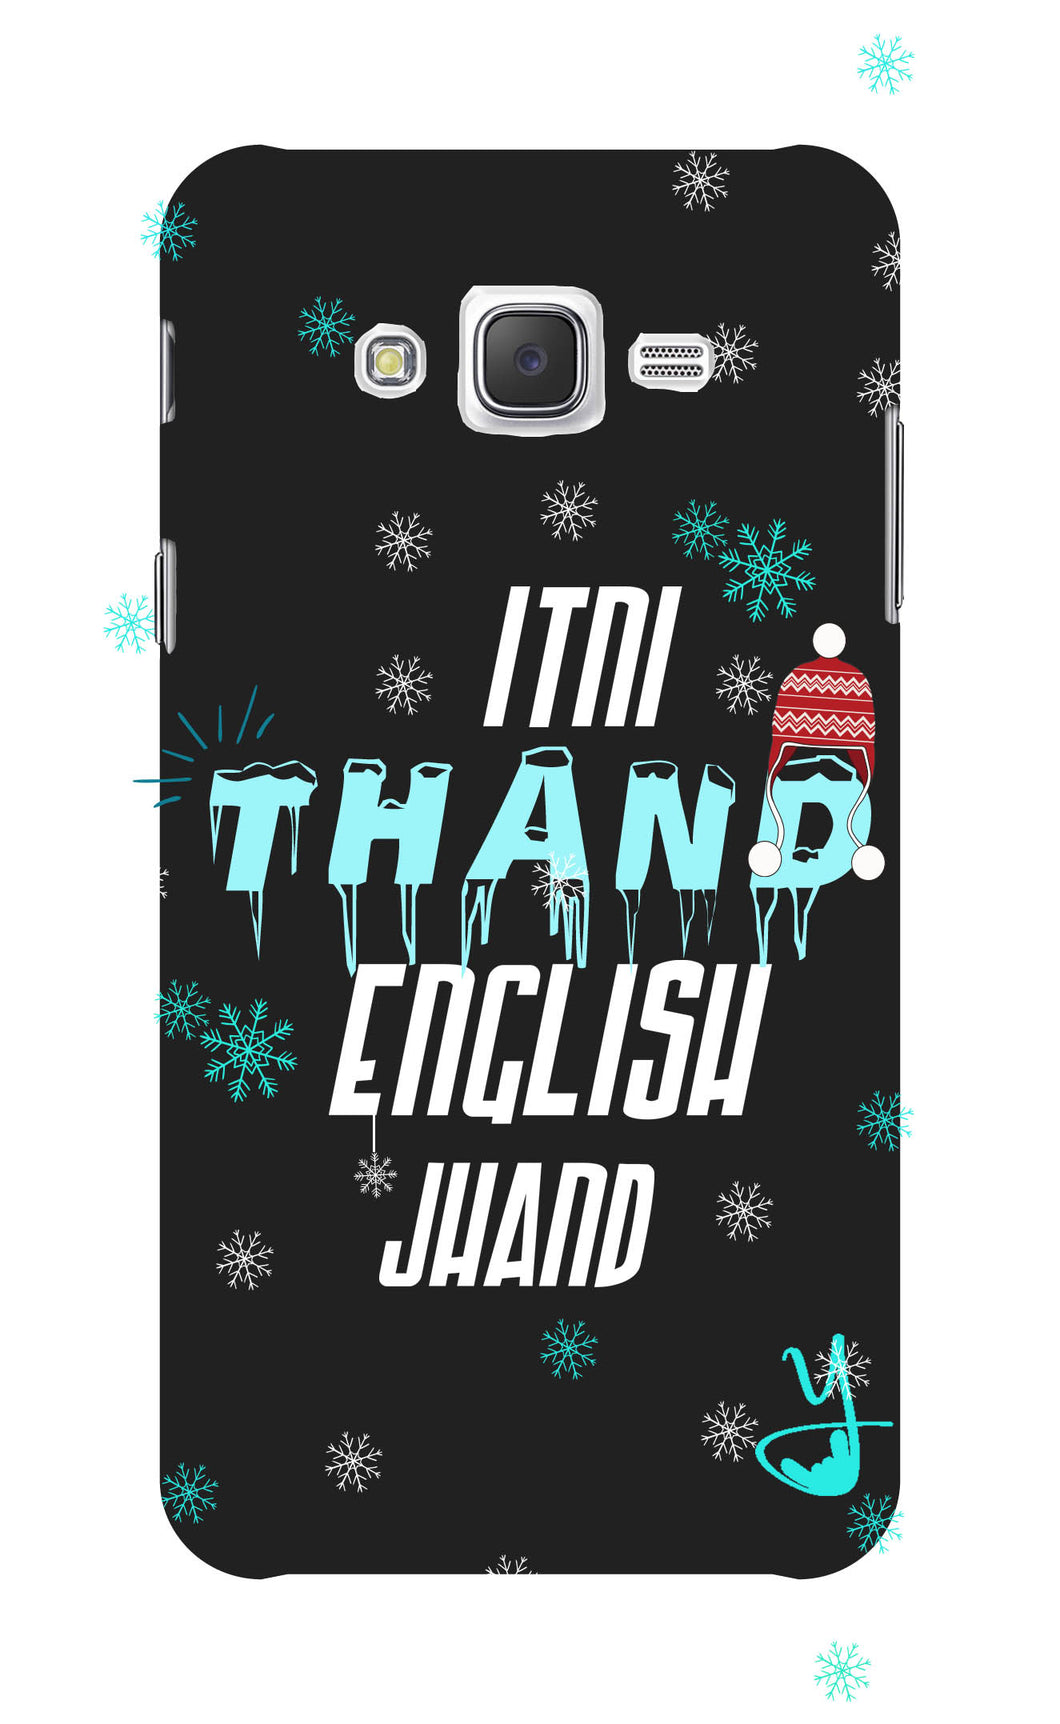 Itni Thand edition for Samsung galaxy j7